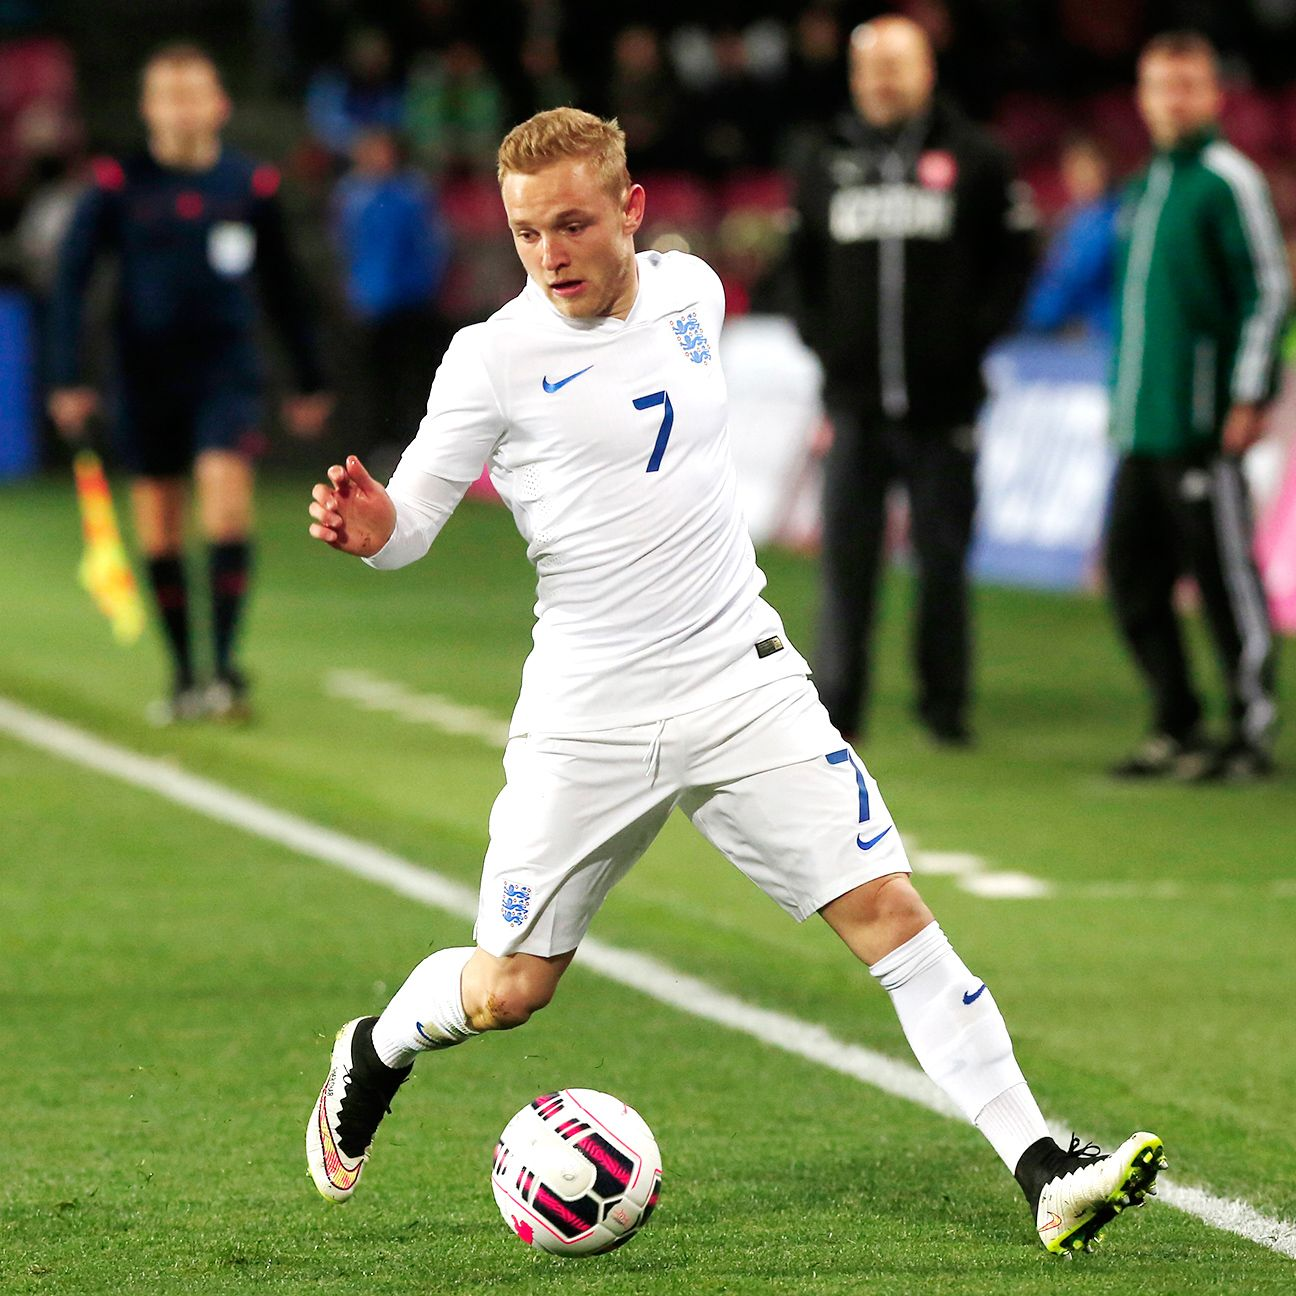 Tottenham fans will hope to see big things from England youth international Alex Pritchard in 2015-16.